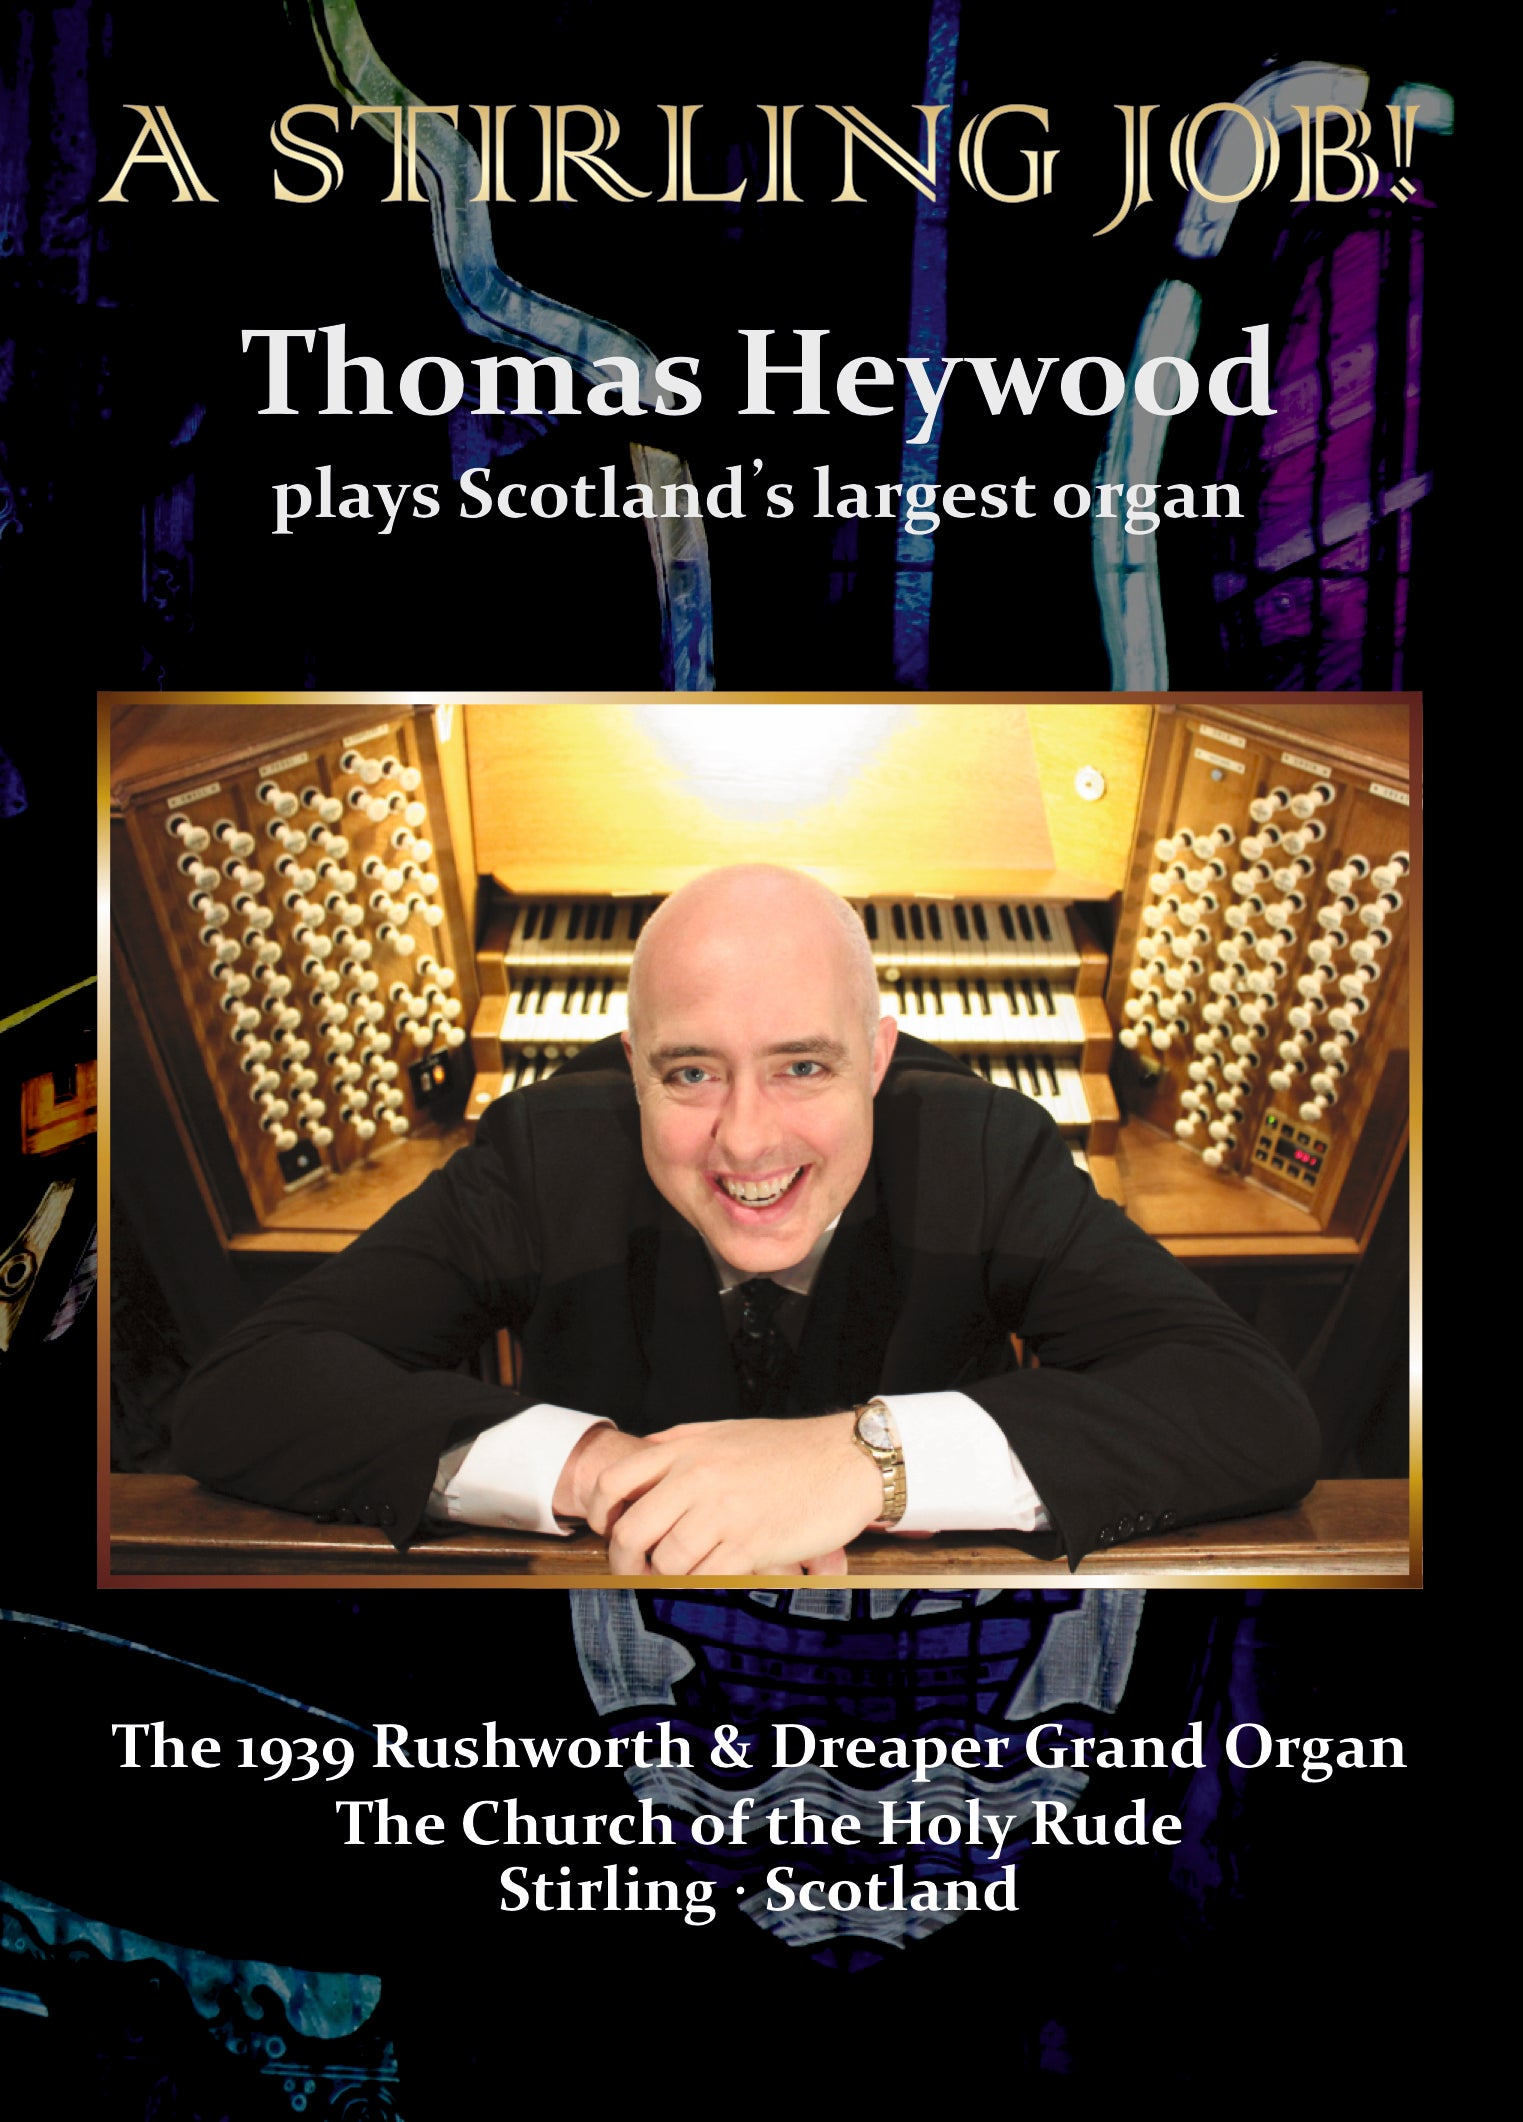 A Stirling Job! (MP4 Film) | Thomas Heywood | Concert Organ International